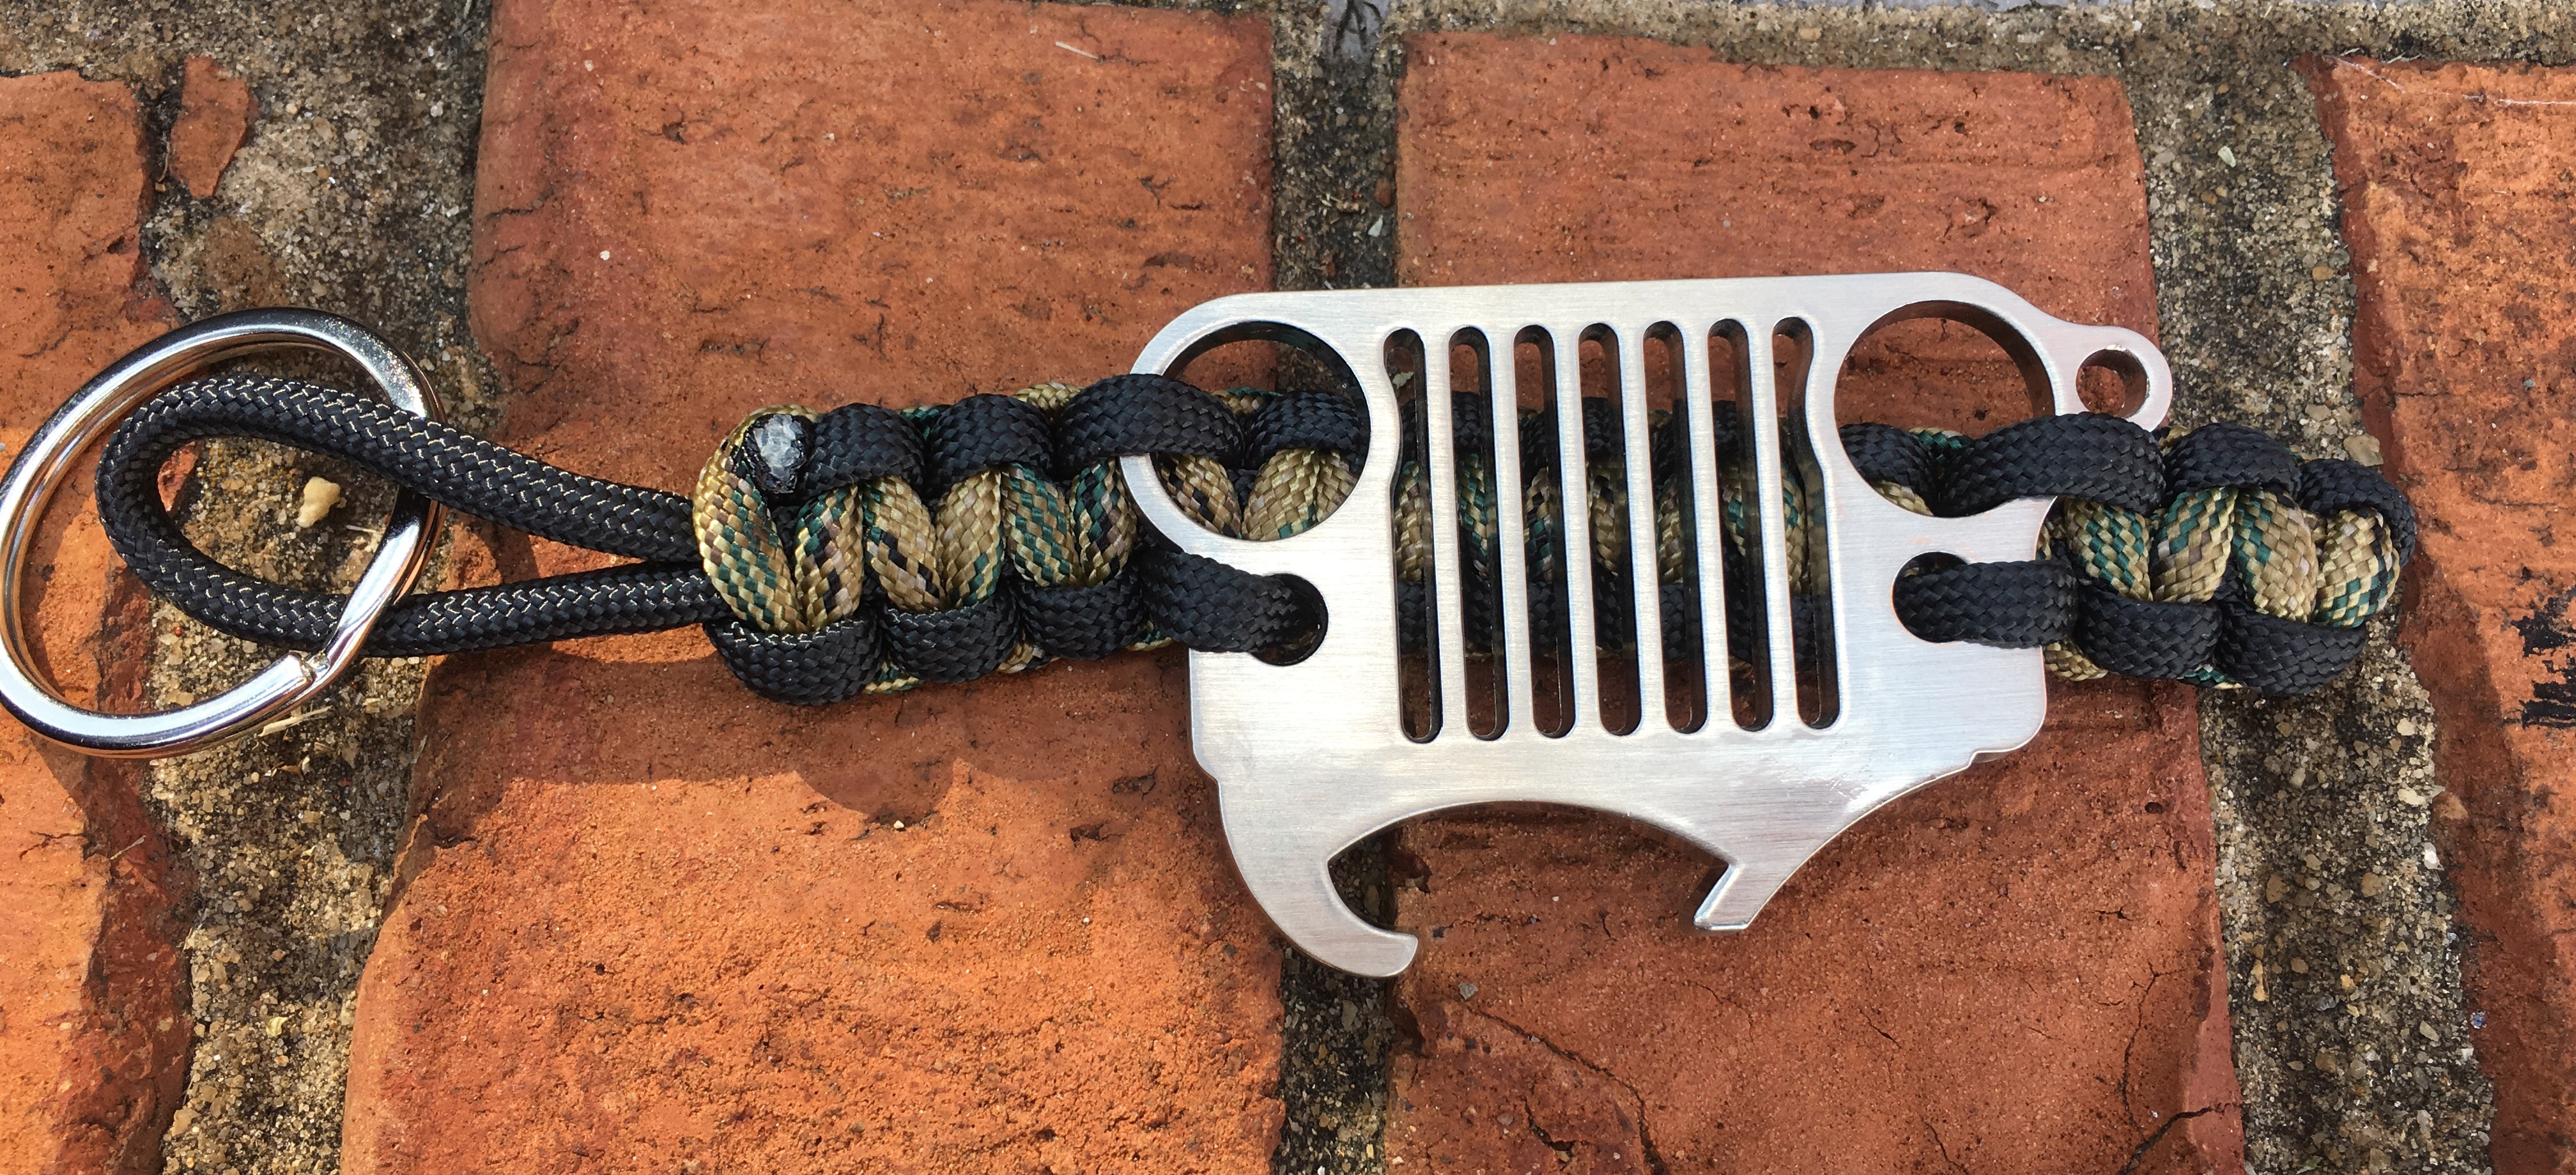 Jeep Grille Paracord Keychain in Camo and Black with Bottle Opener Grille